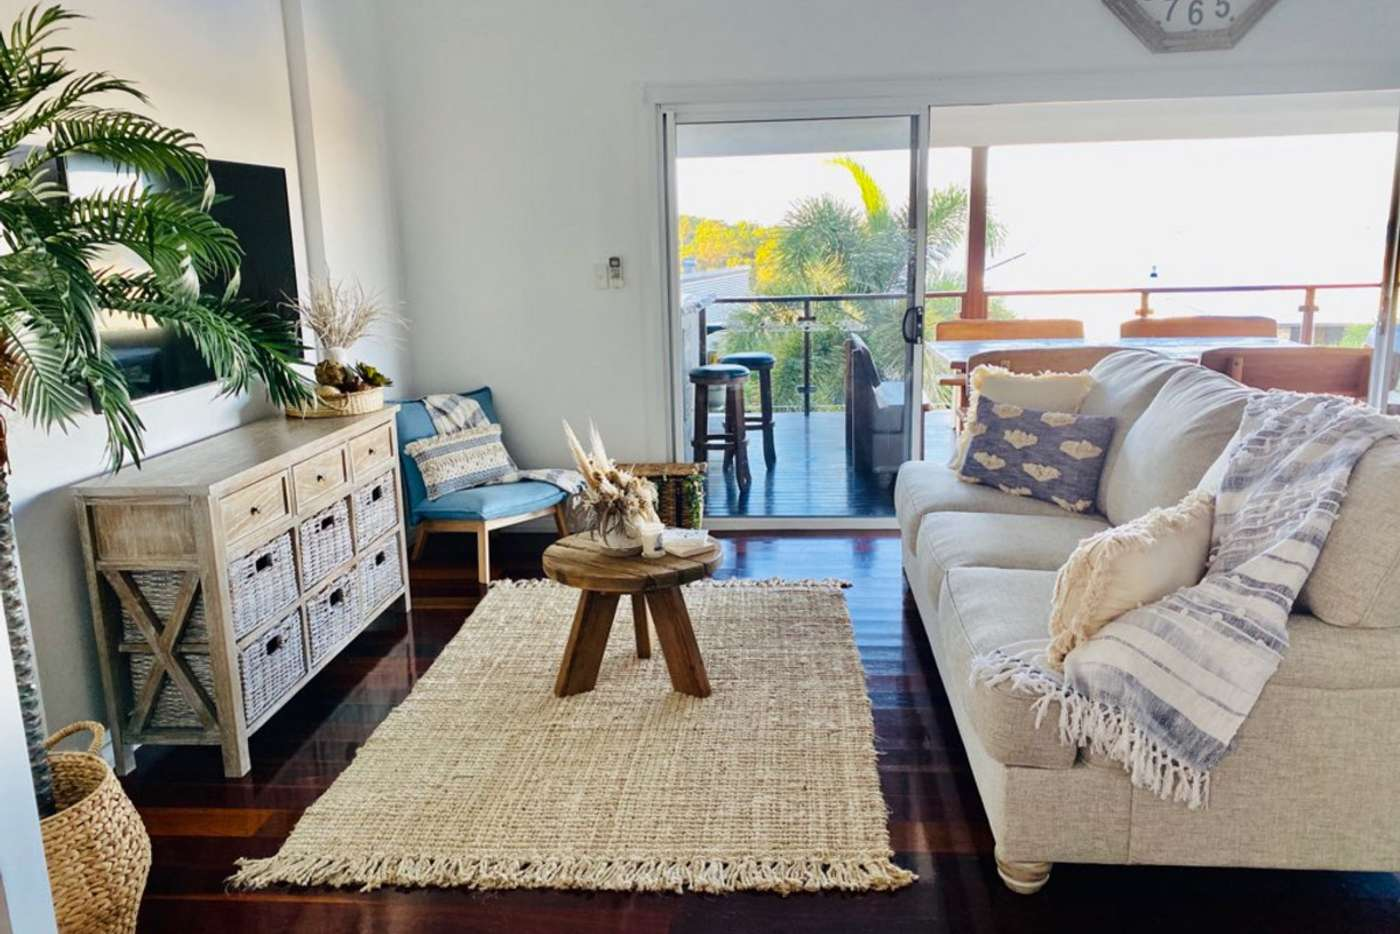 Main view of Homely house listing, 6 Jordan Avenue, Lammermoor QLD 4703